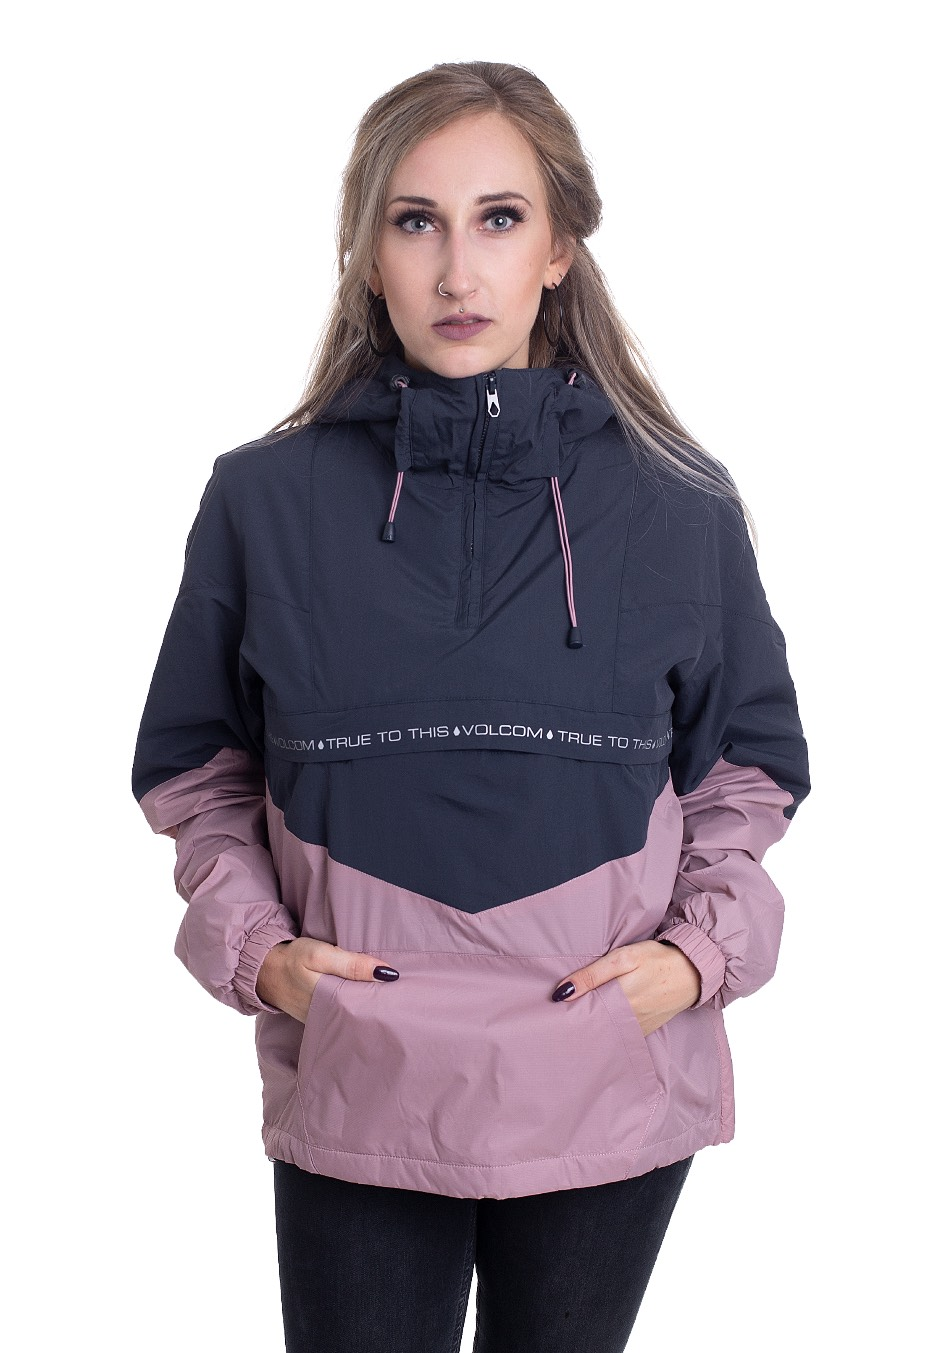 Jacken - Volcom Volbreaker Insulate Faded Mauve Jacken  - Onlineshop IMPERICON